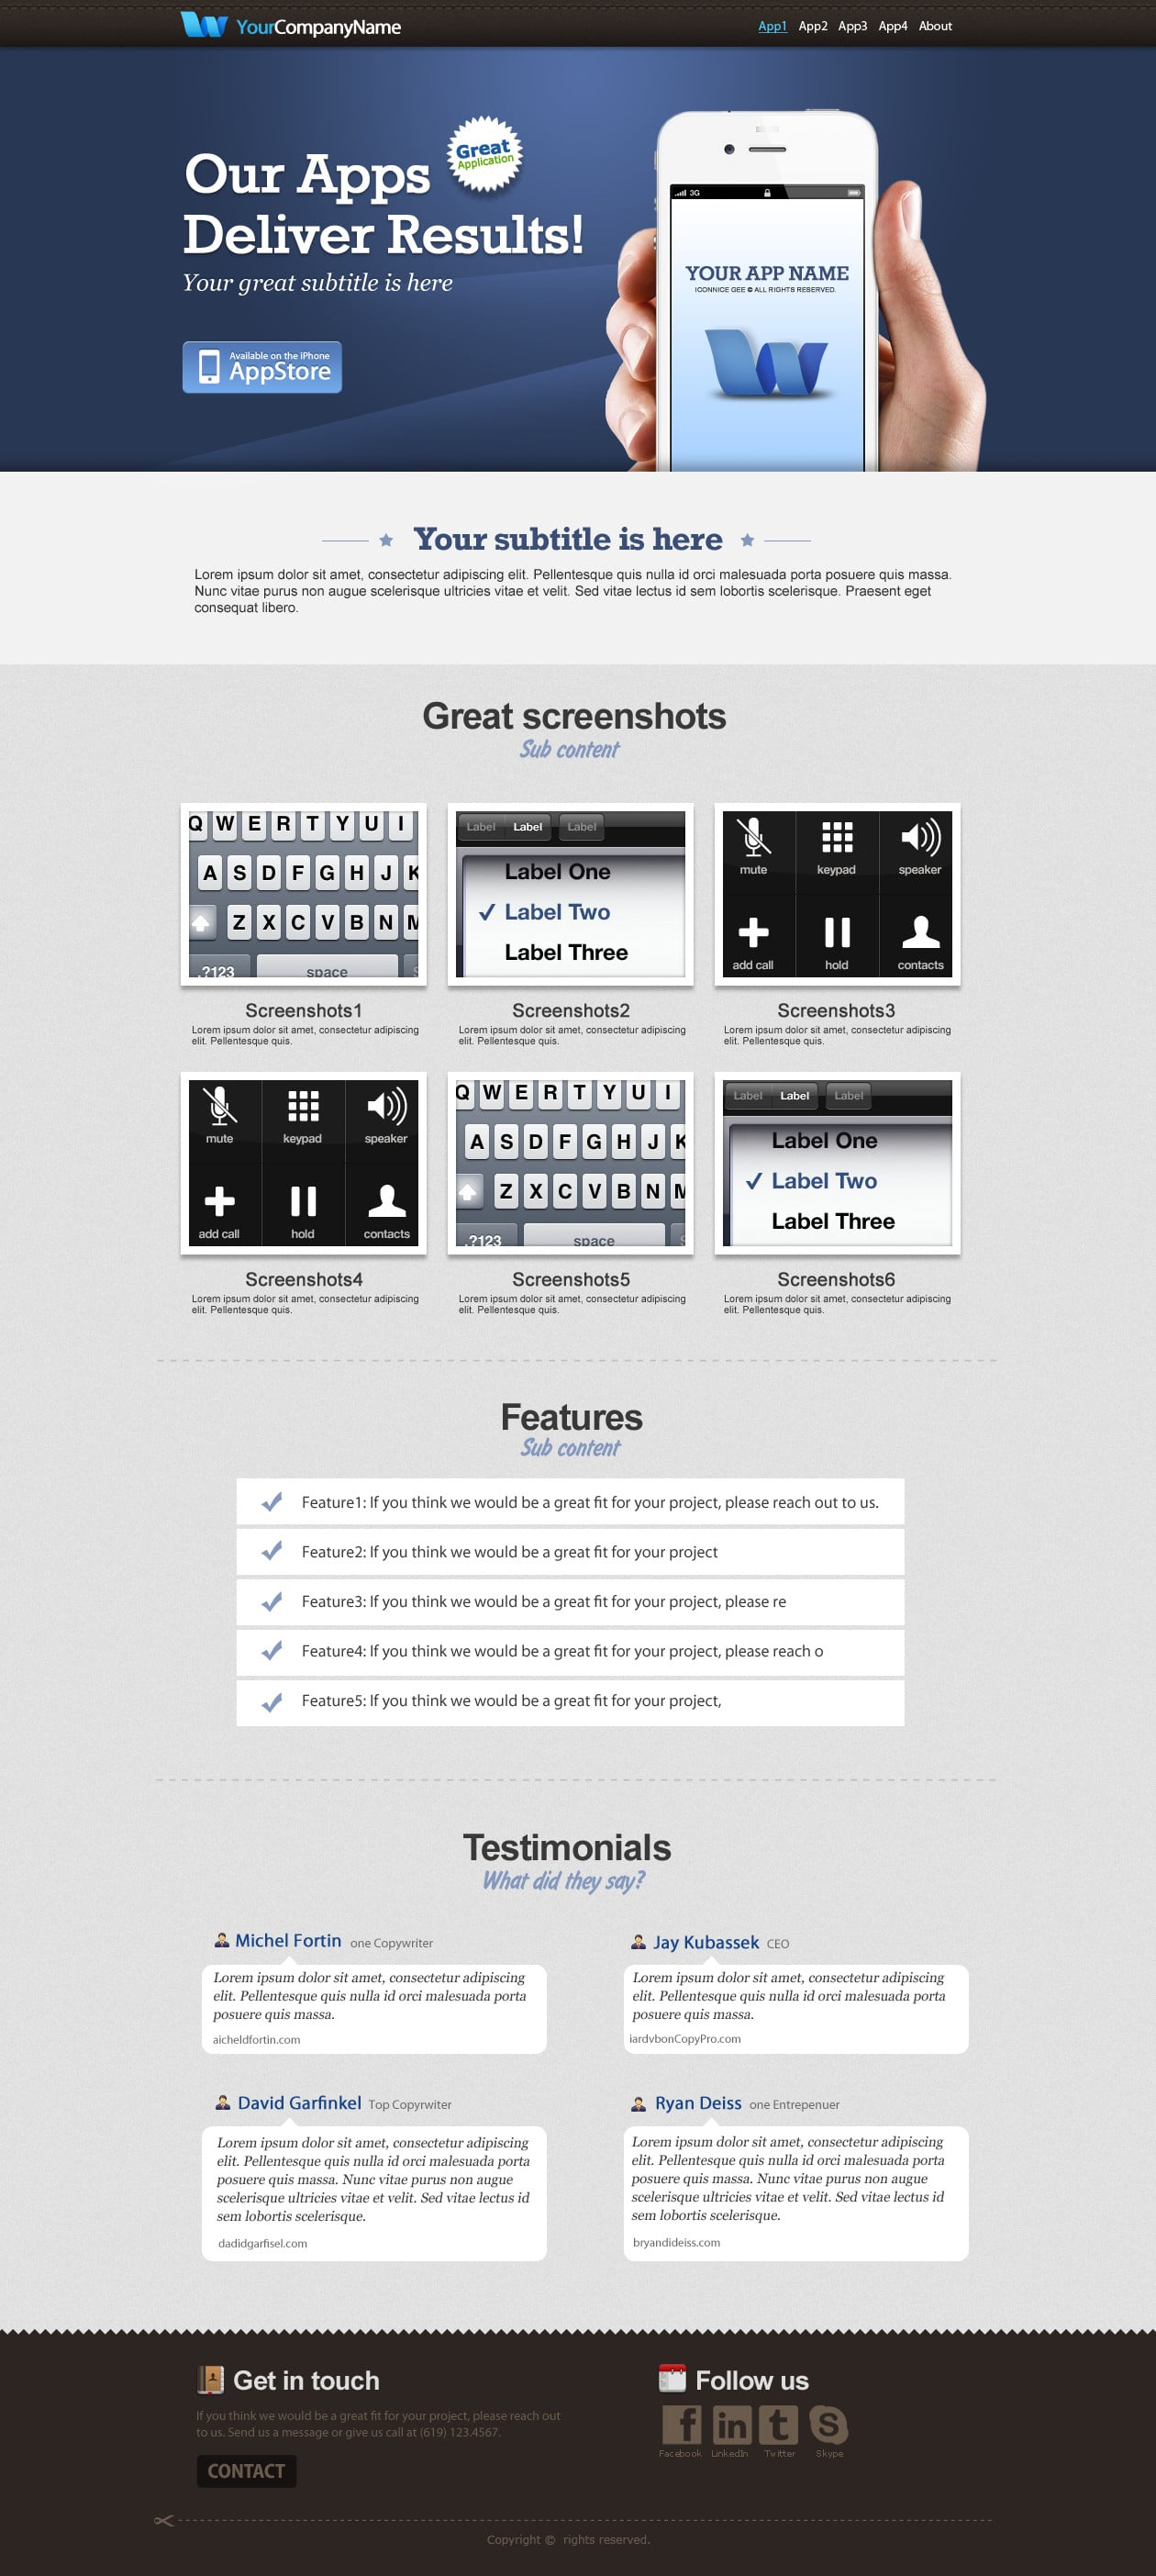 IconNice Big Bundle: 25 iOS app web templates and more! - iPhone1